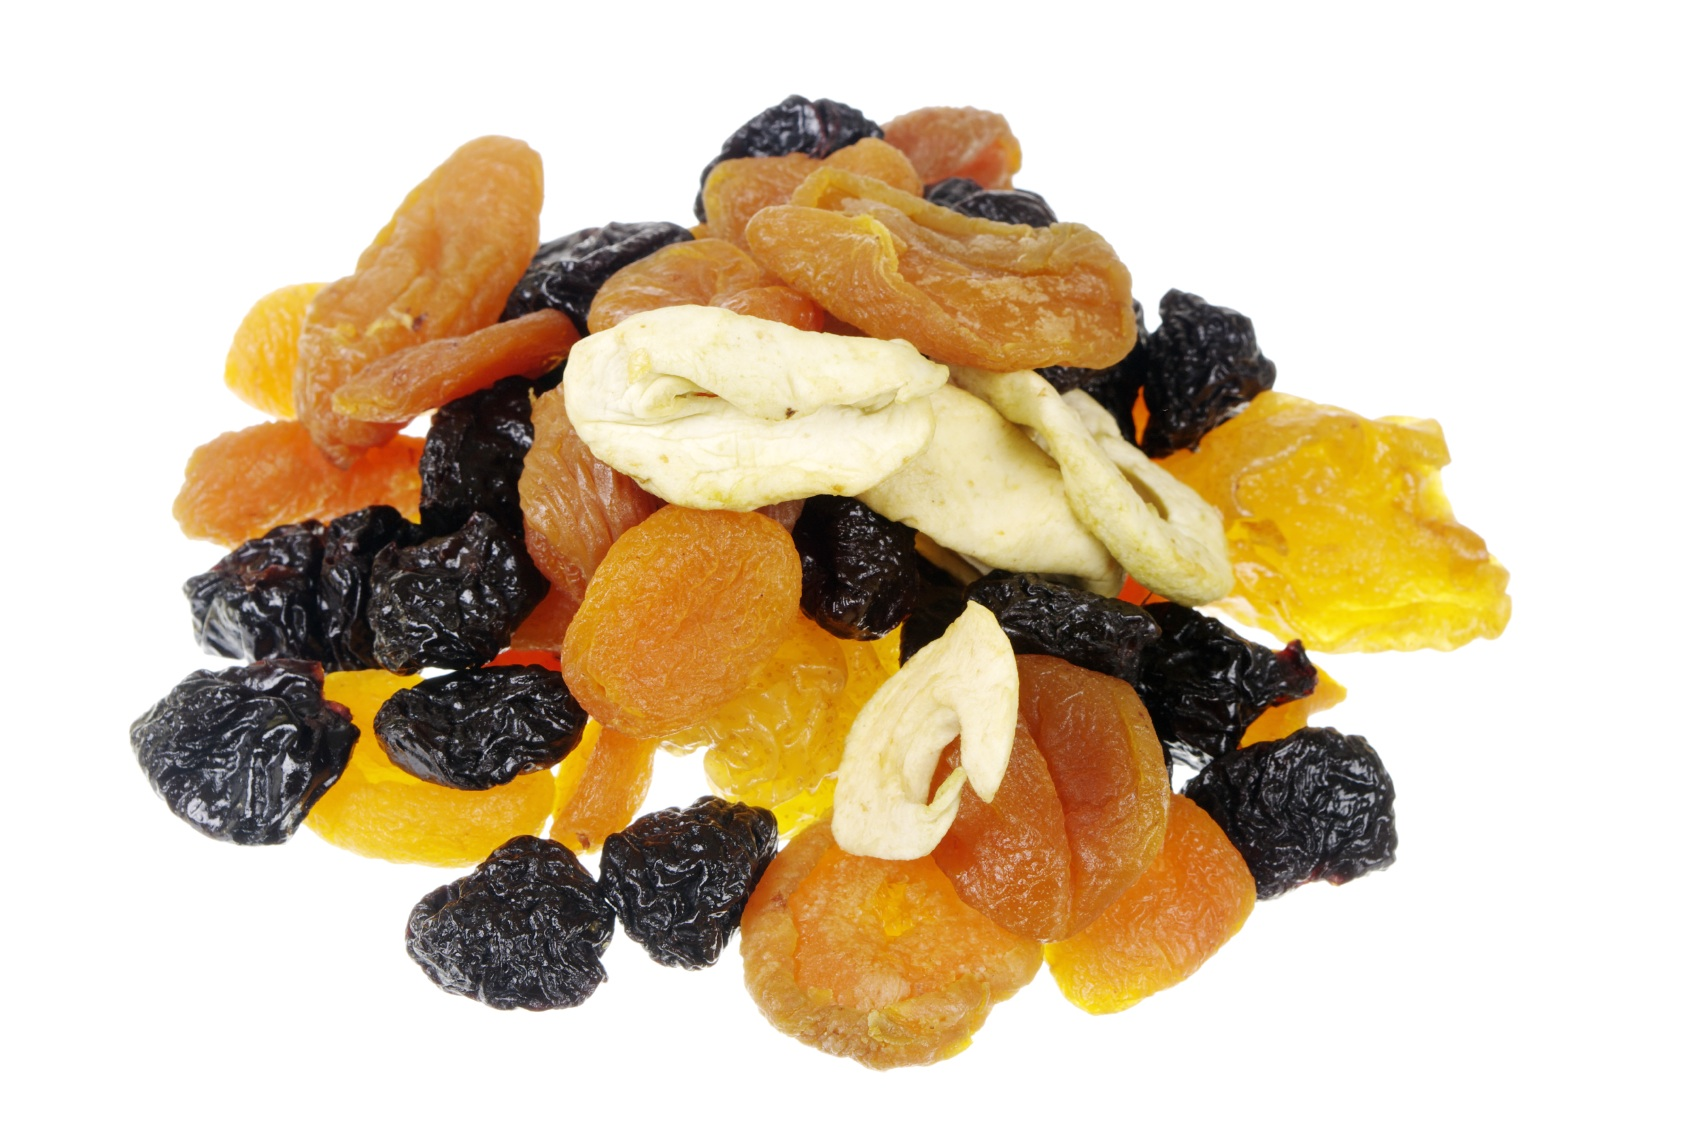 1. Dried Fruit